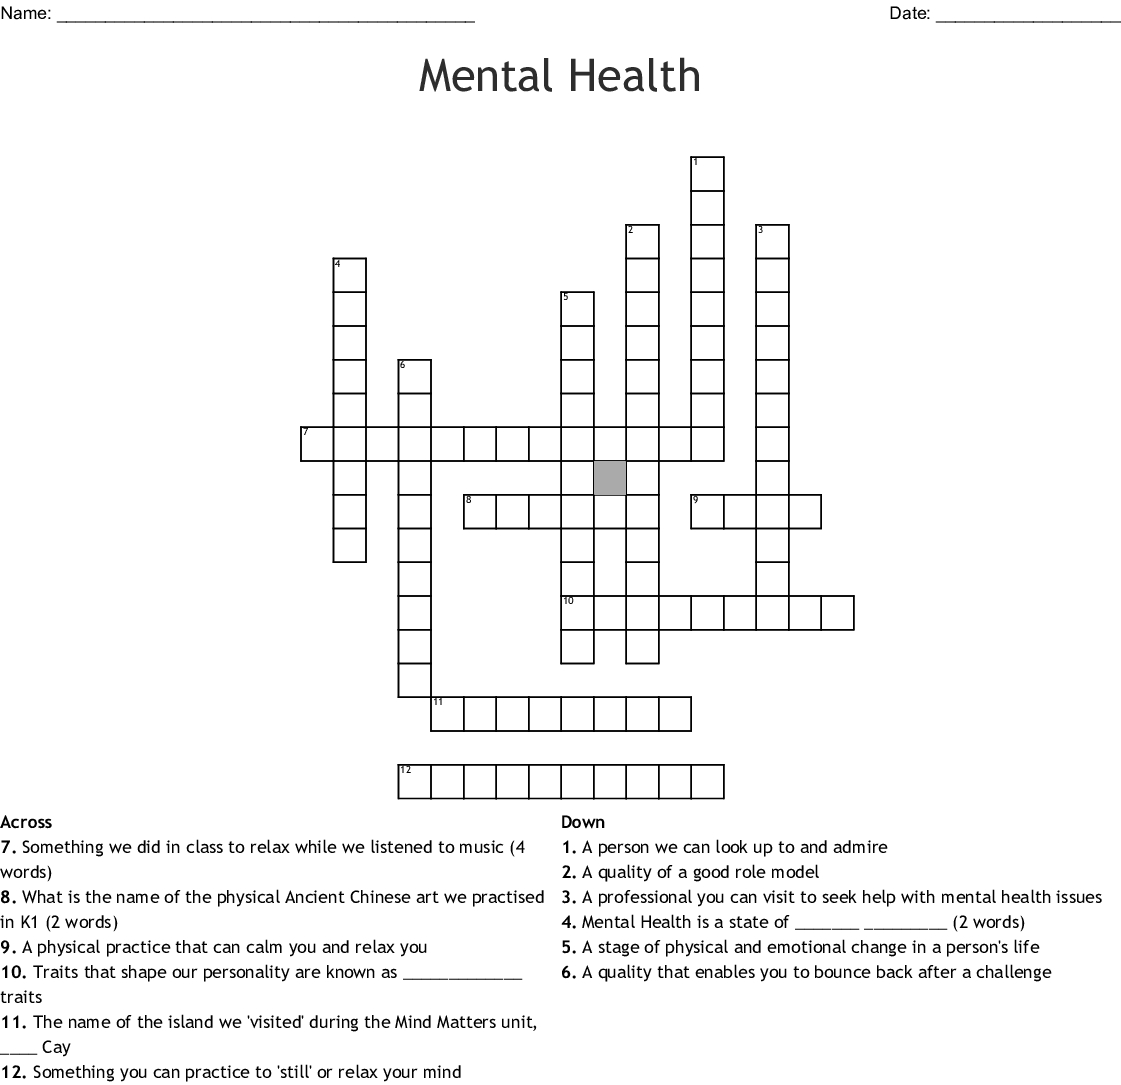 Mental Health Crossword - Wordmint - Printable Crossword Puzzles For Mental Health